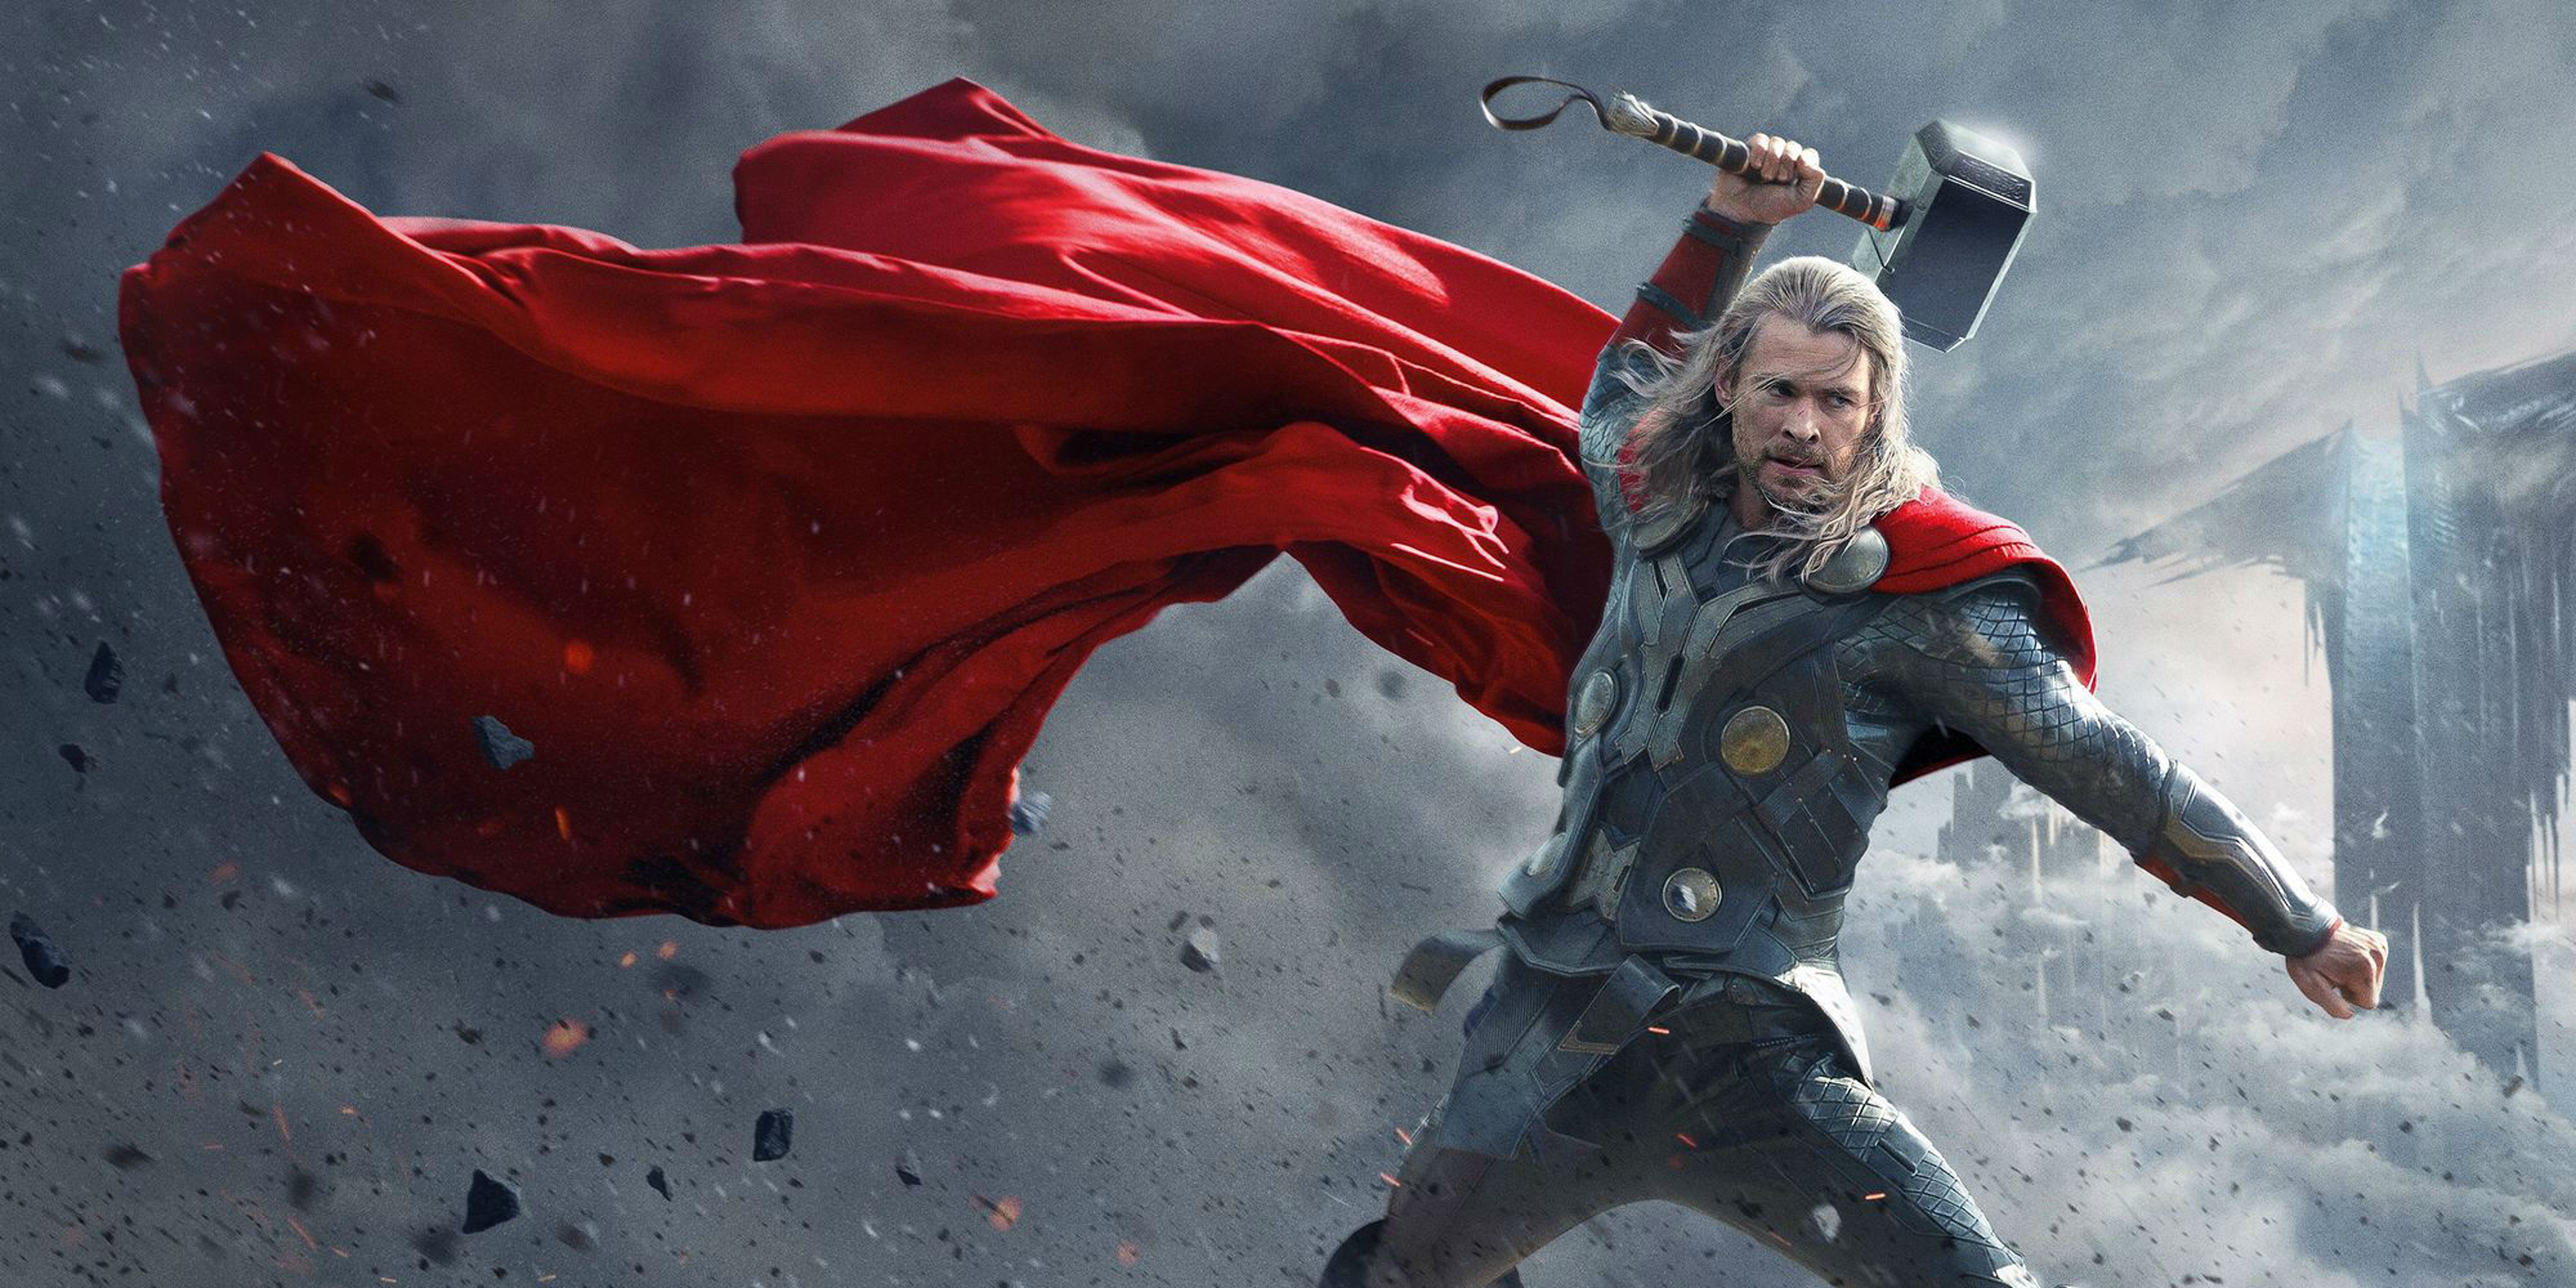 Thor Backgrounds, Compatible - PC, Mobile, Gadgets| 3000x1500 px